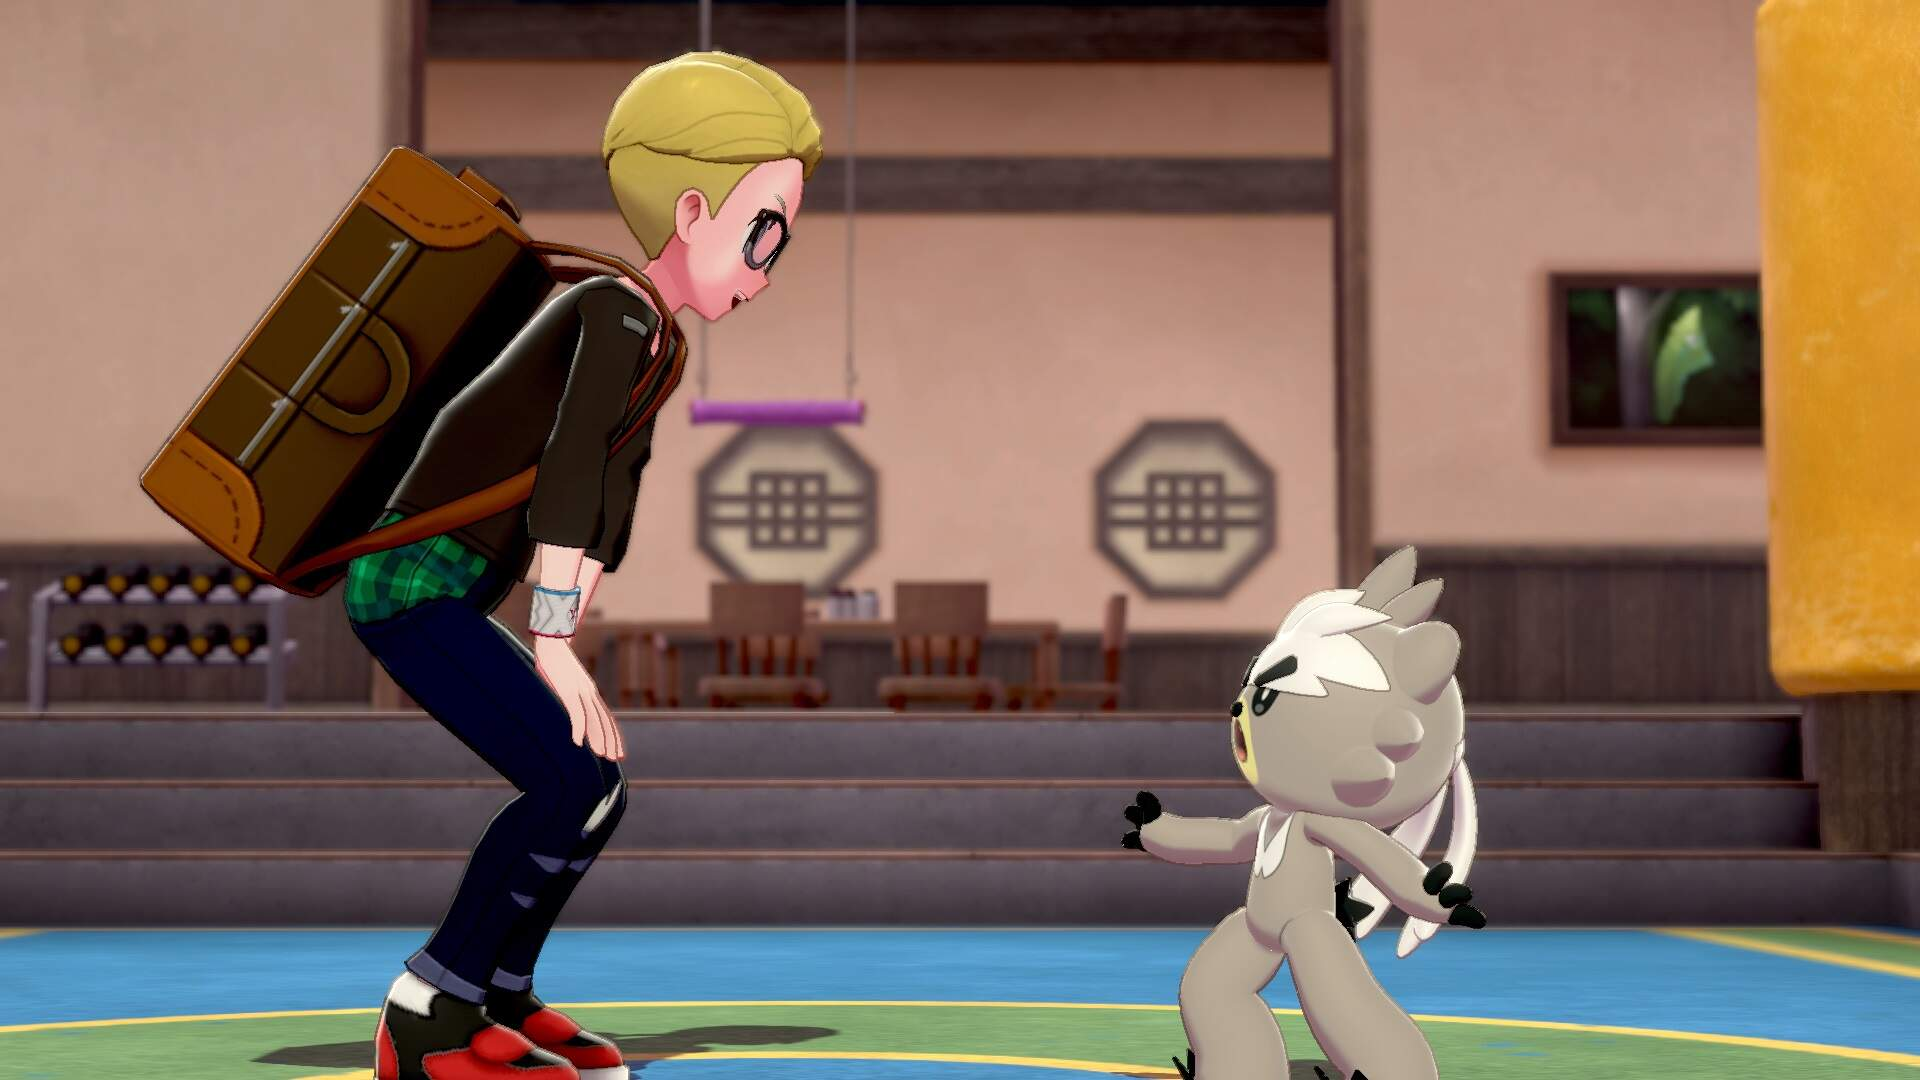 Pokemon Sword and Shield Isle of Armor DLC: Where to Get Kubfu